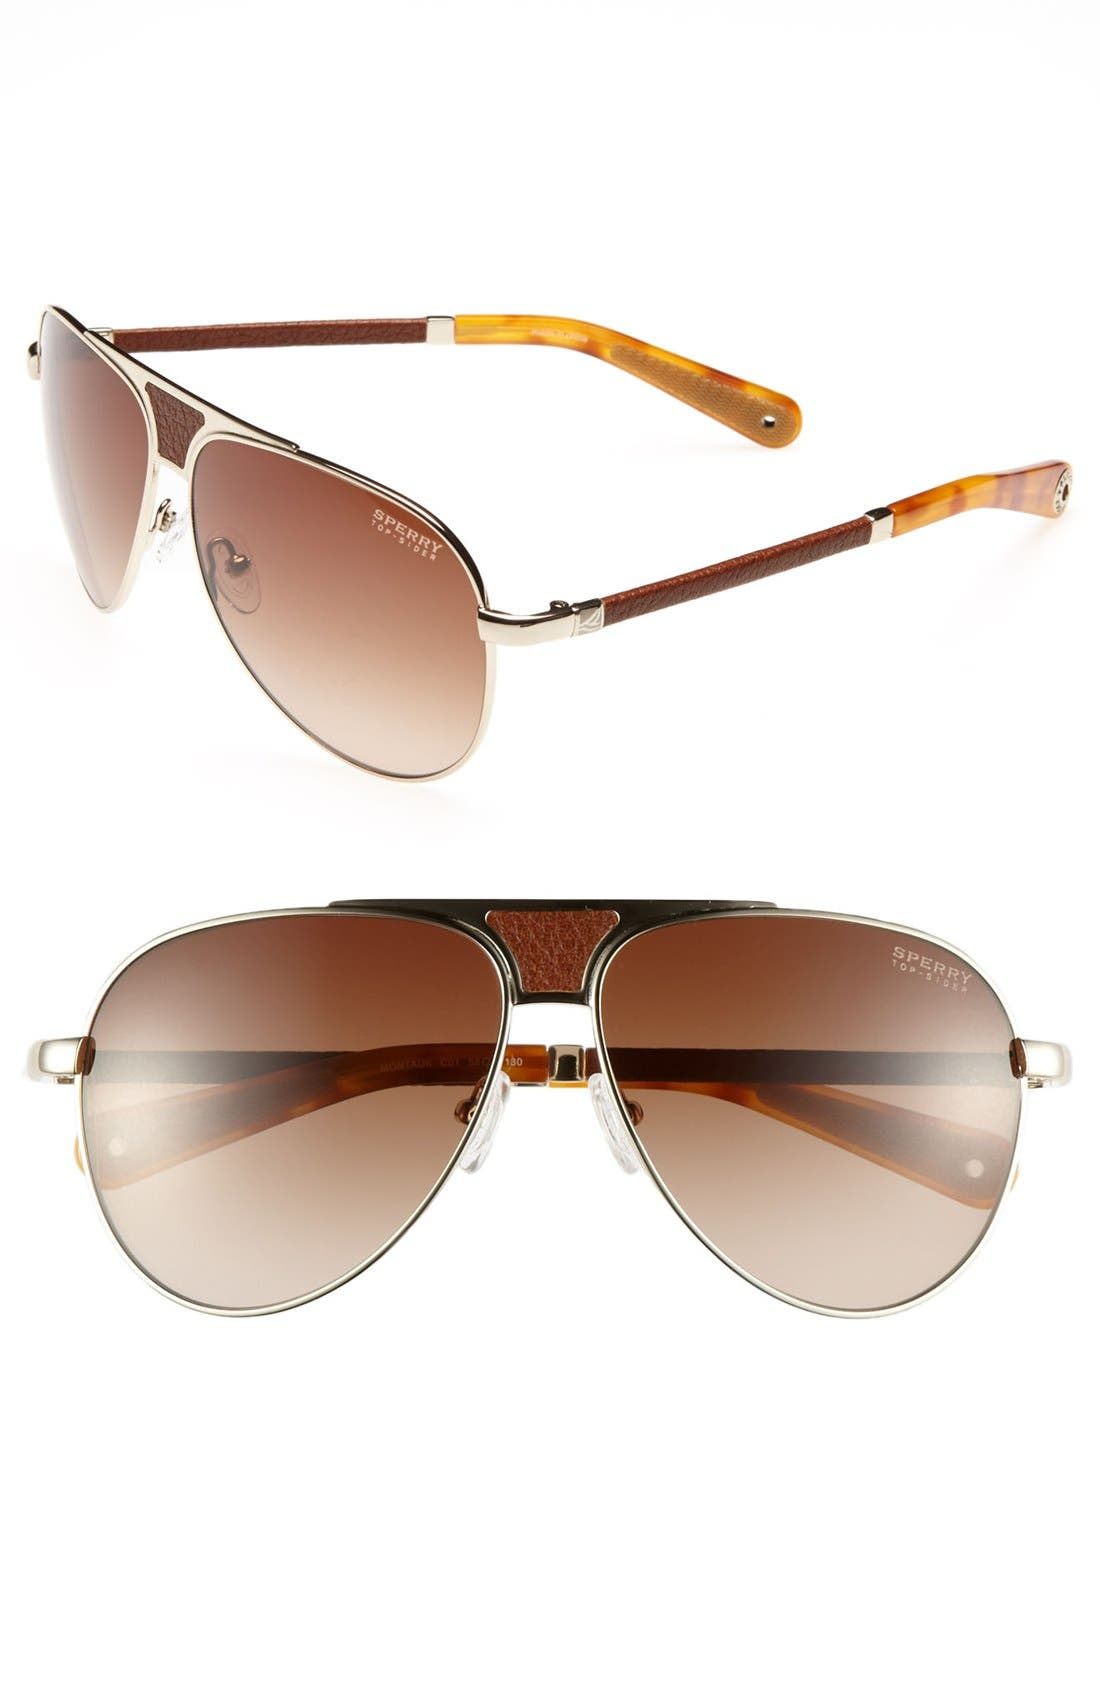 Alternate Image 1 Selected - Sperry Top-Sider® 'Montauk' 58mm Aviator Sunglasses (Online Only)